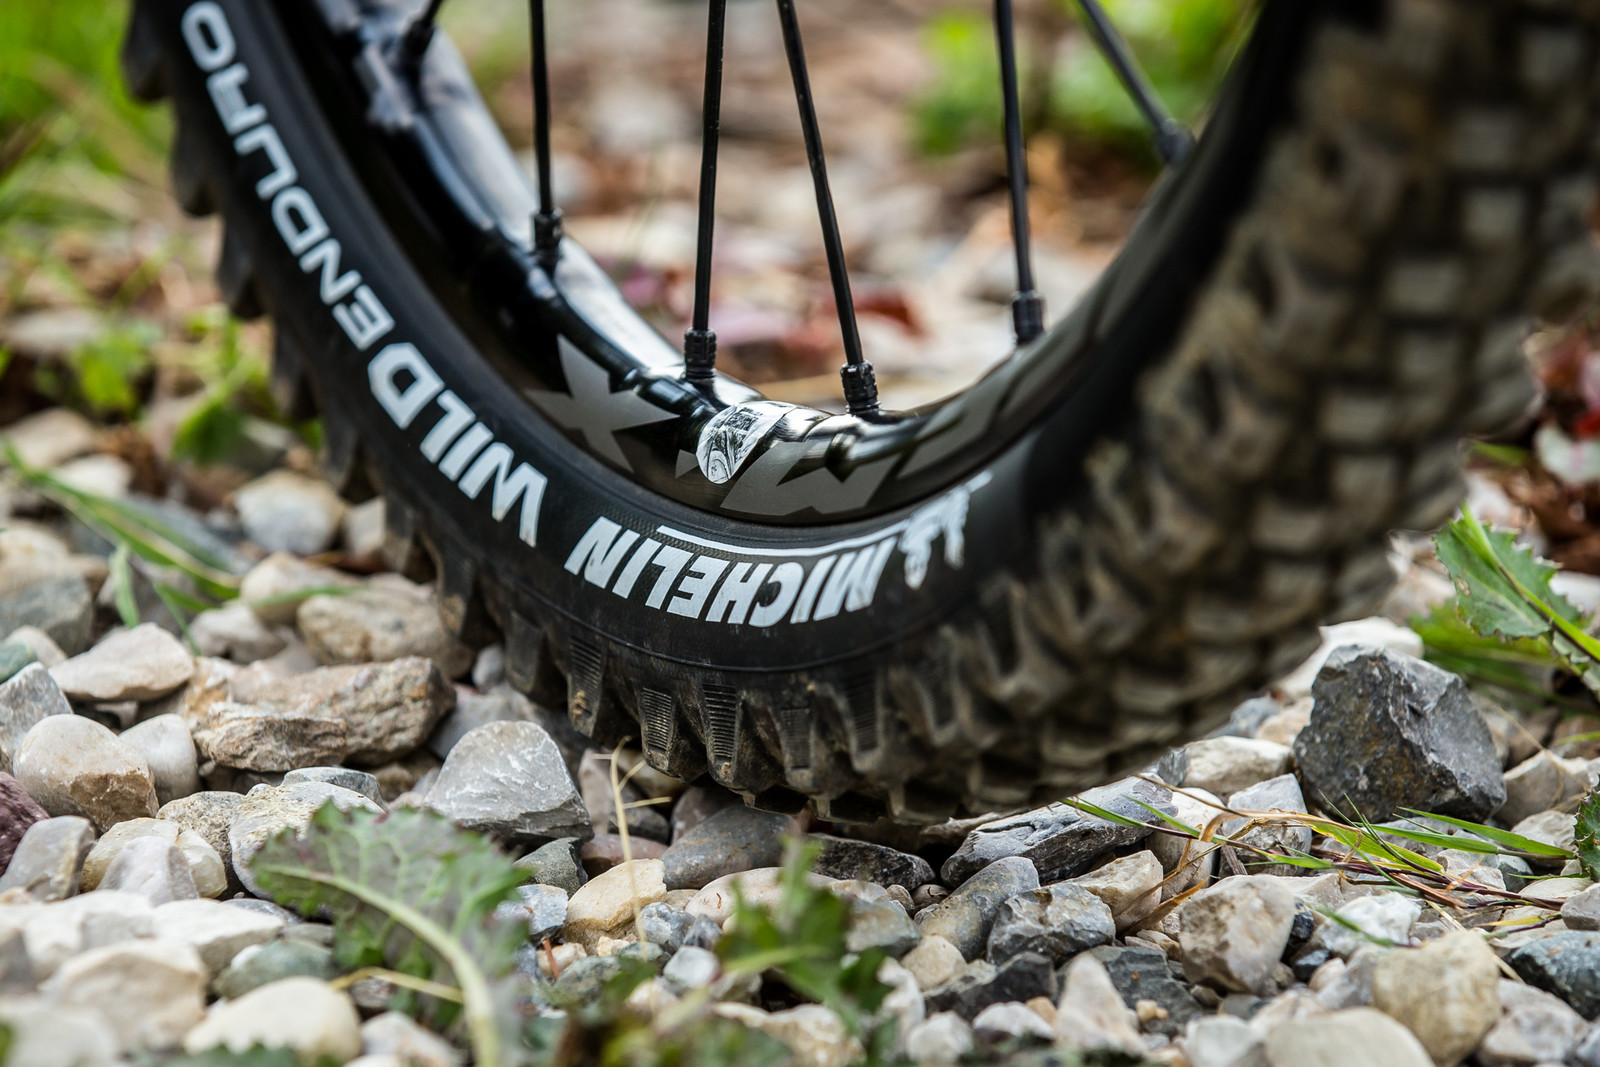 Michelin Wild Enduro Prototype Front Tire - WINNING BIKE - Sam Hill's Nukeproof Mega 275 - Mountain Biking Pictures - Vital MTB